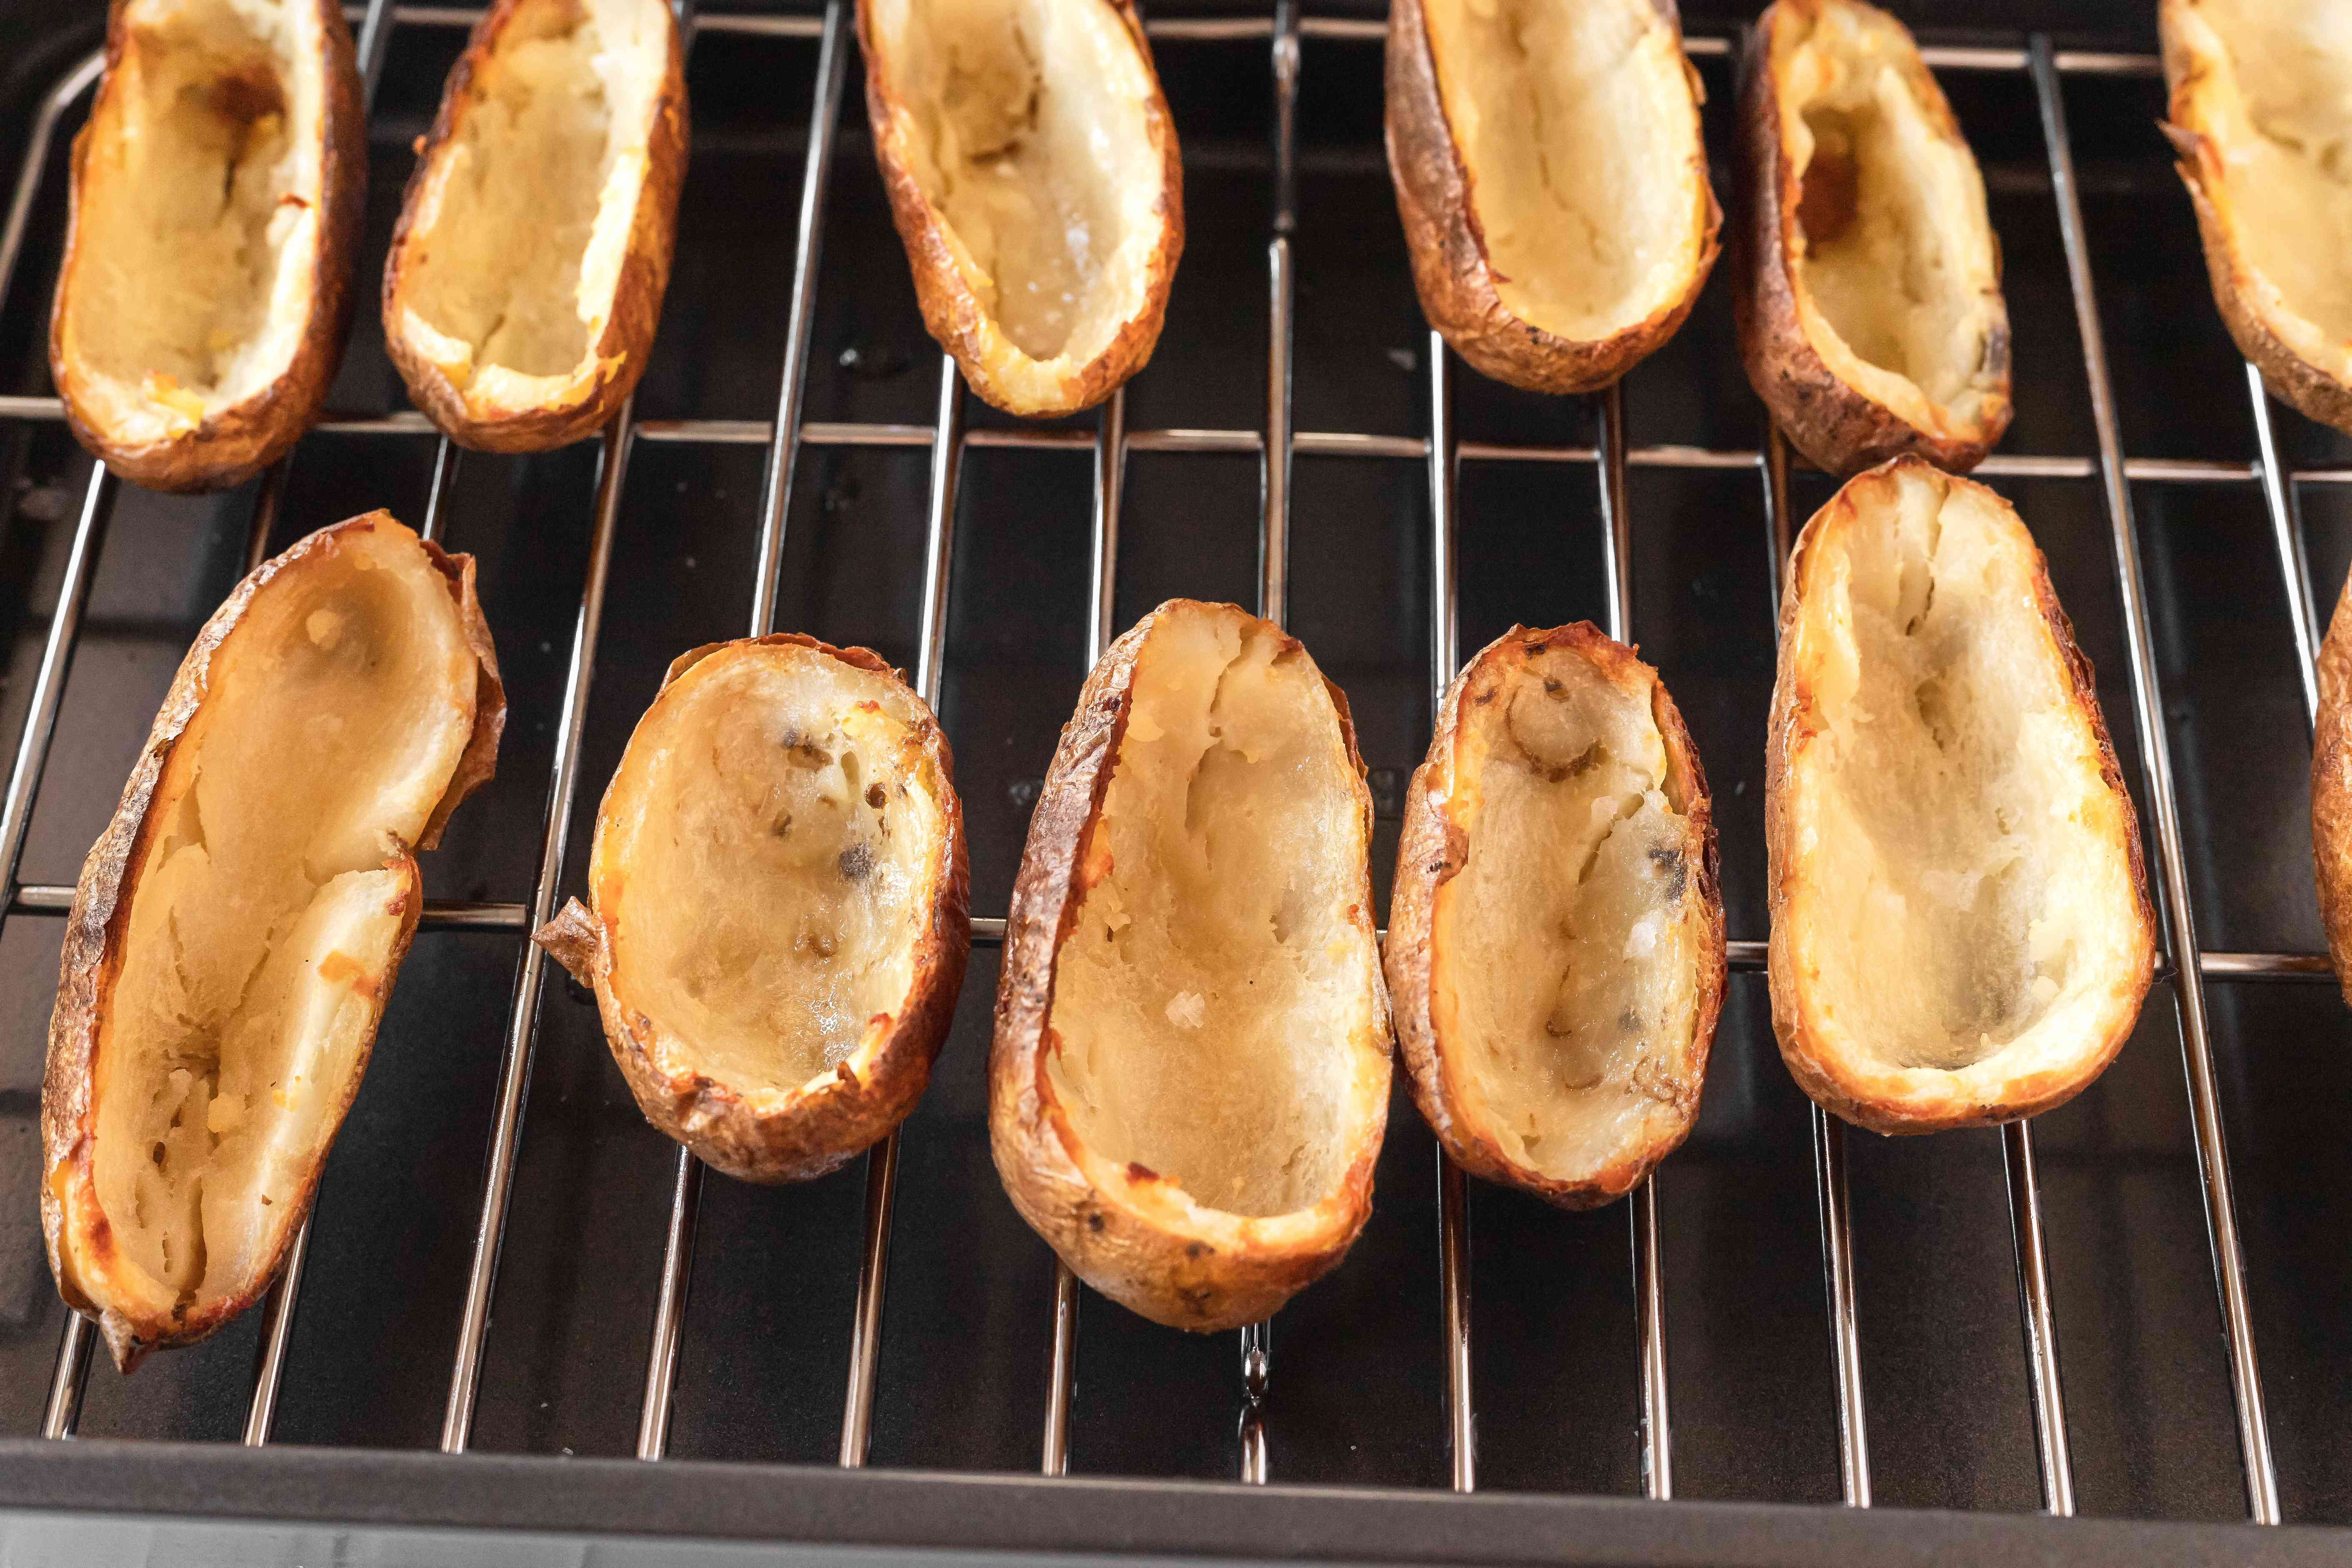 Potato skins baking in the oven.